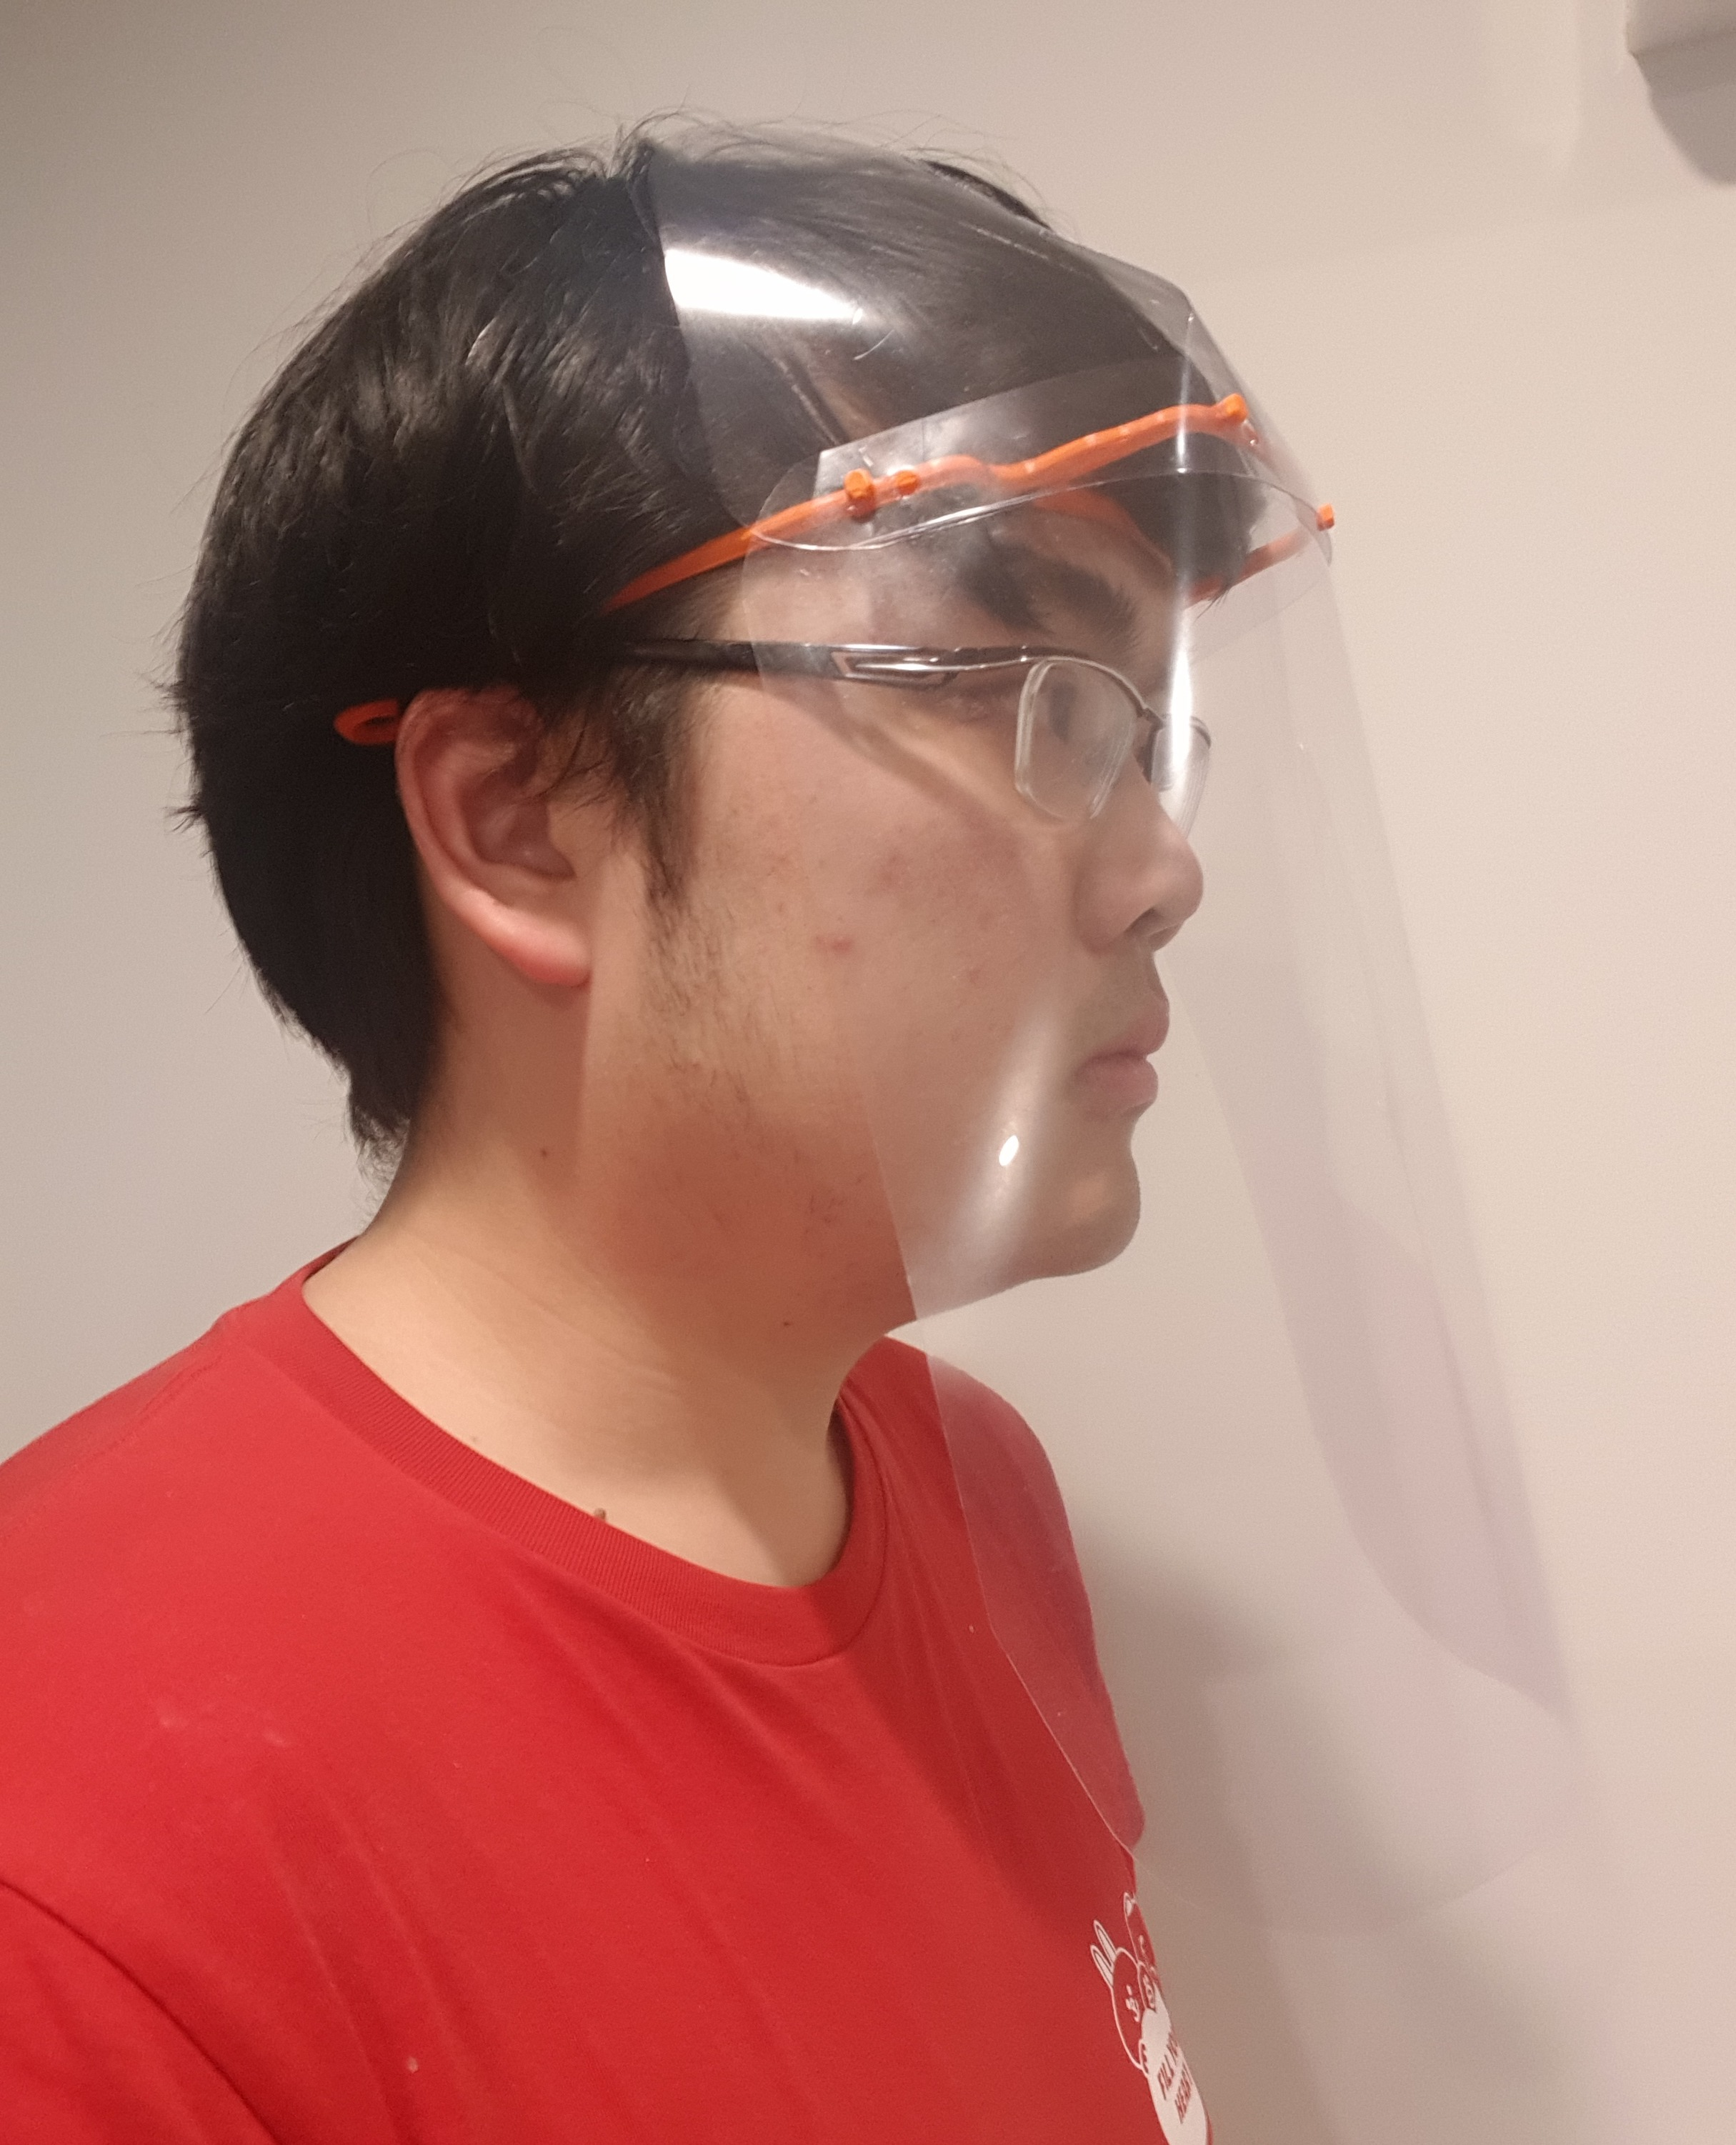 face shield on person